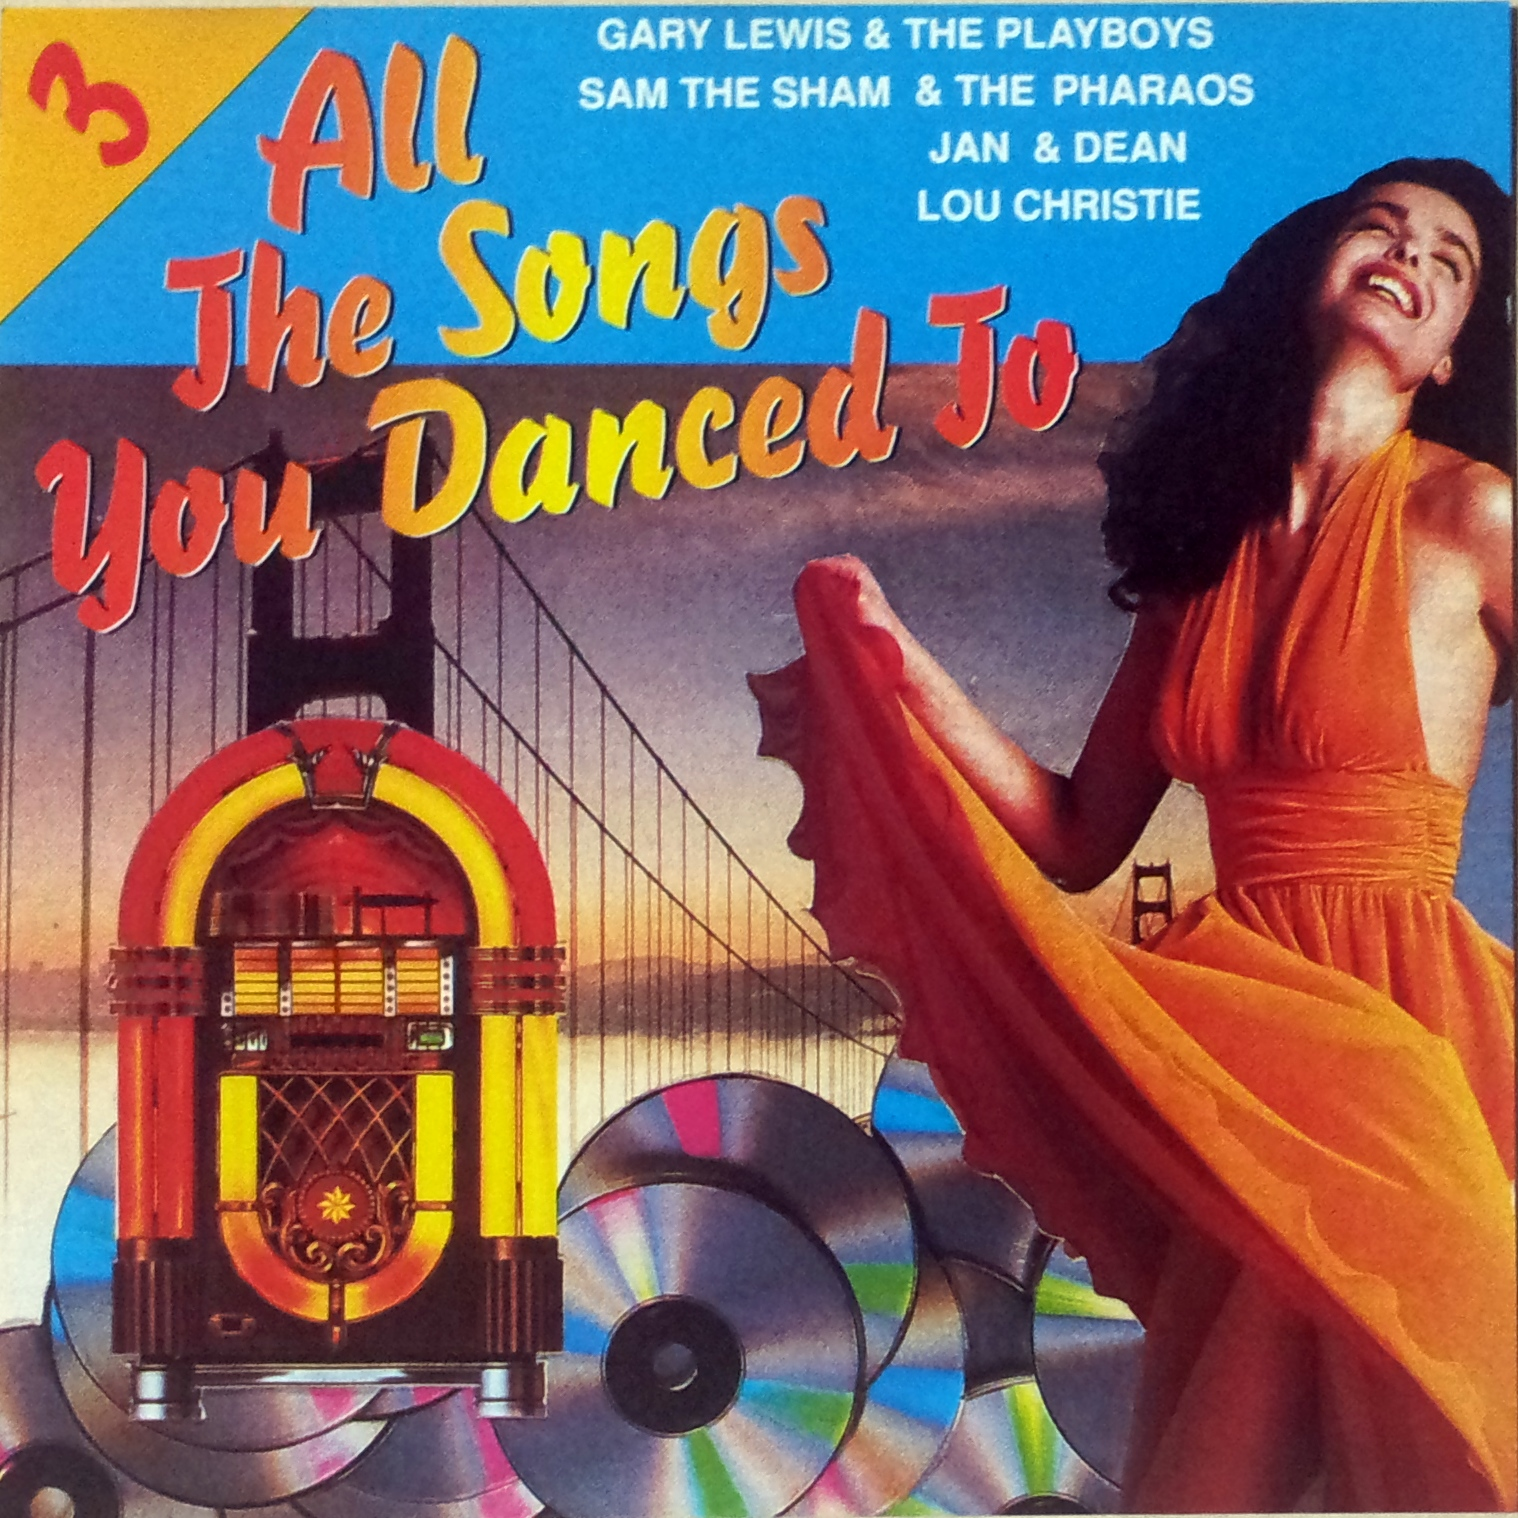 All the songs you danced to Vol. 3